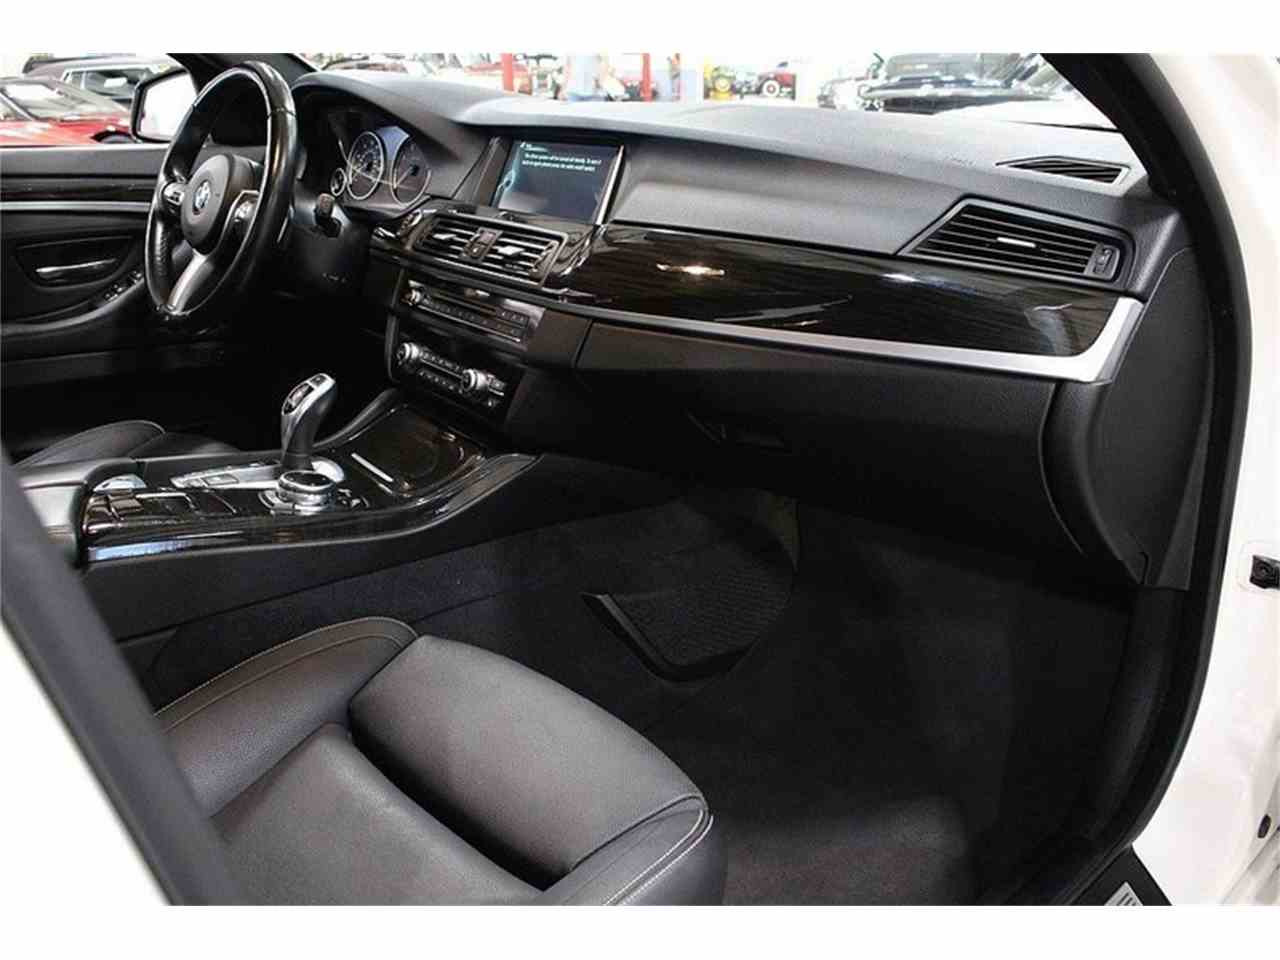 Large Picture of '14 BMW 5 Series located in Michigan - $34,900.00 Offered by GR Auto Gallery - M41M